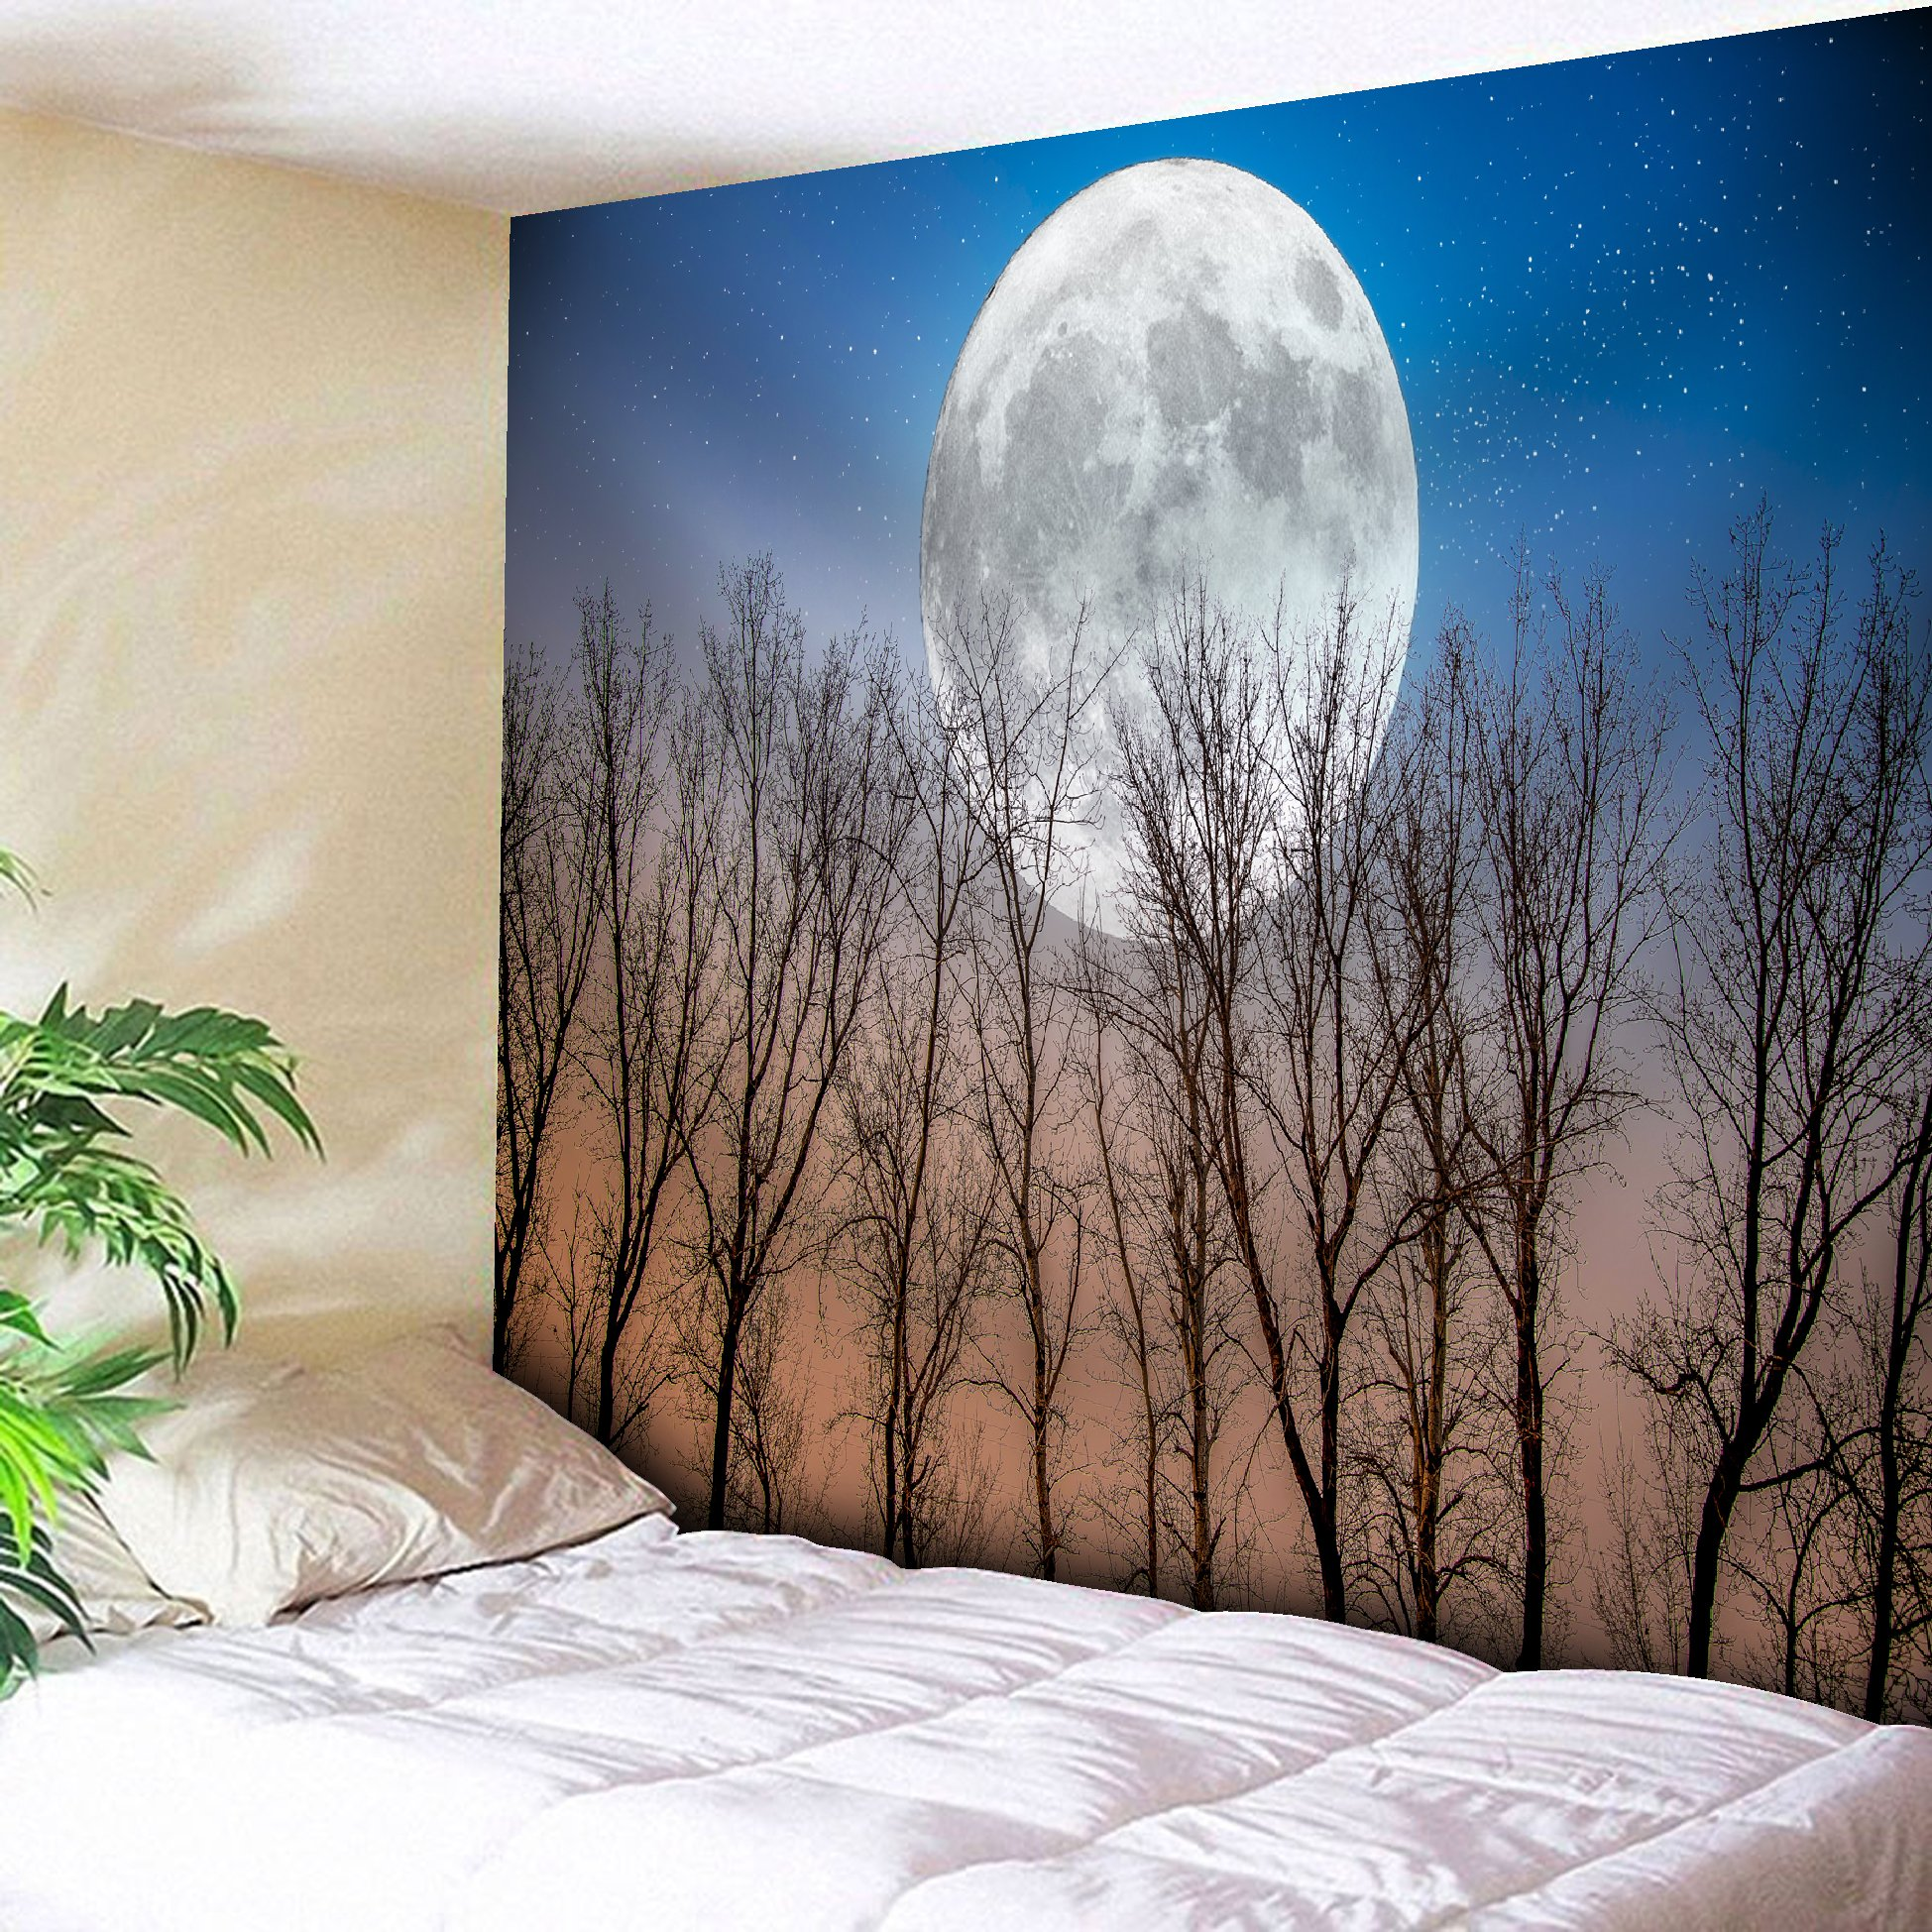 Get Orange Forest Full Moon Illumination in Woods Star Night Heavenly Lunar Treetops Up Space Art Fabric Artwork Party Art Wall Hanging for Bedroom Living Room Dorm Tapestry 80X60 Inch